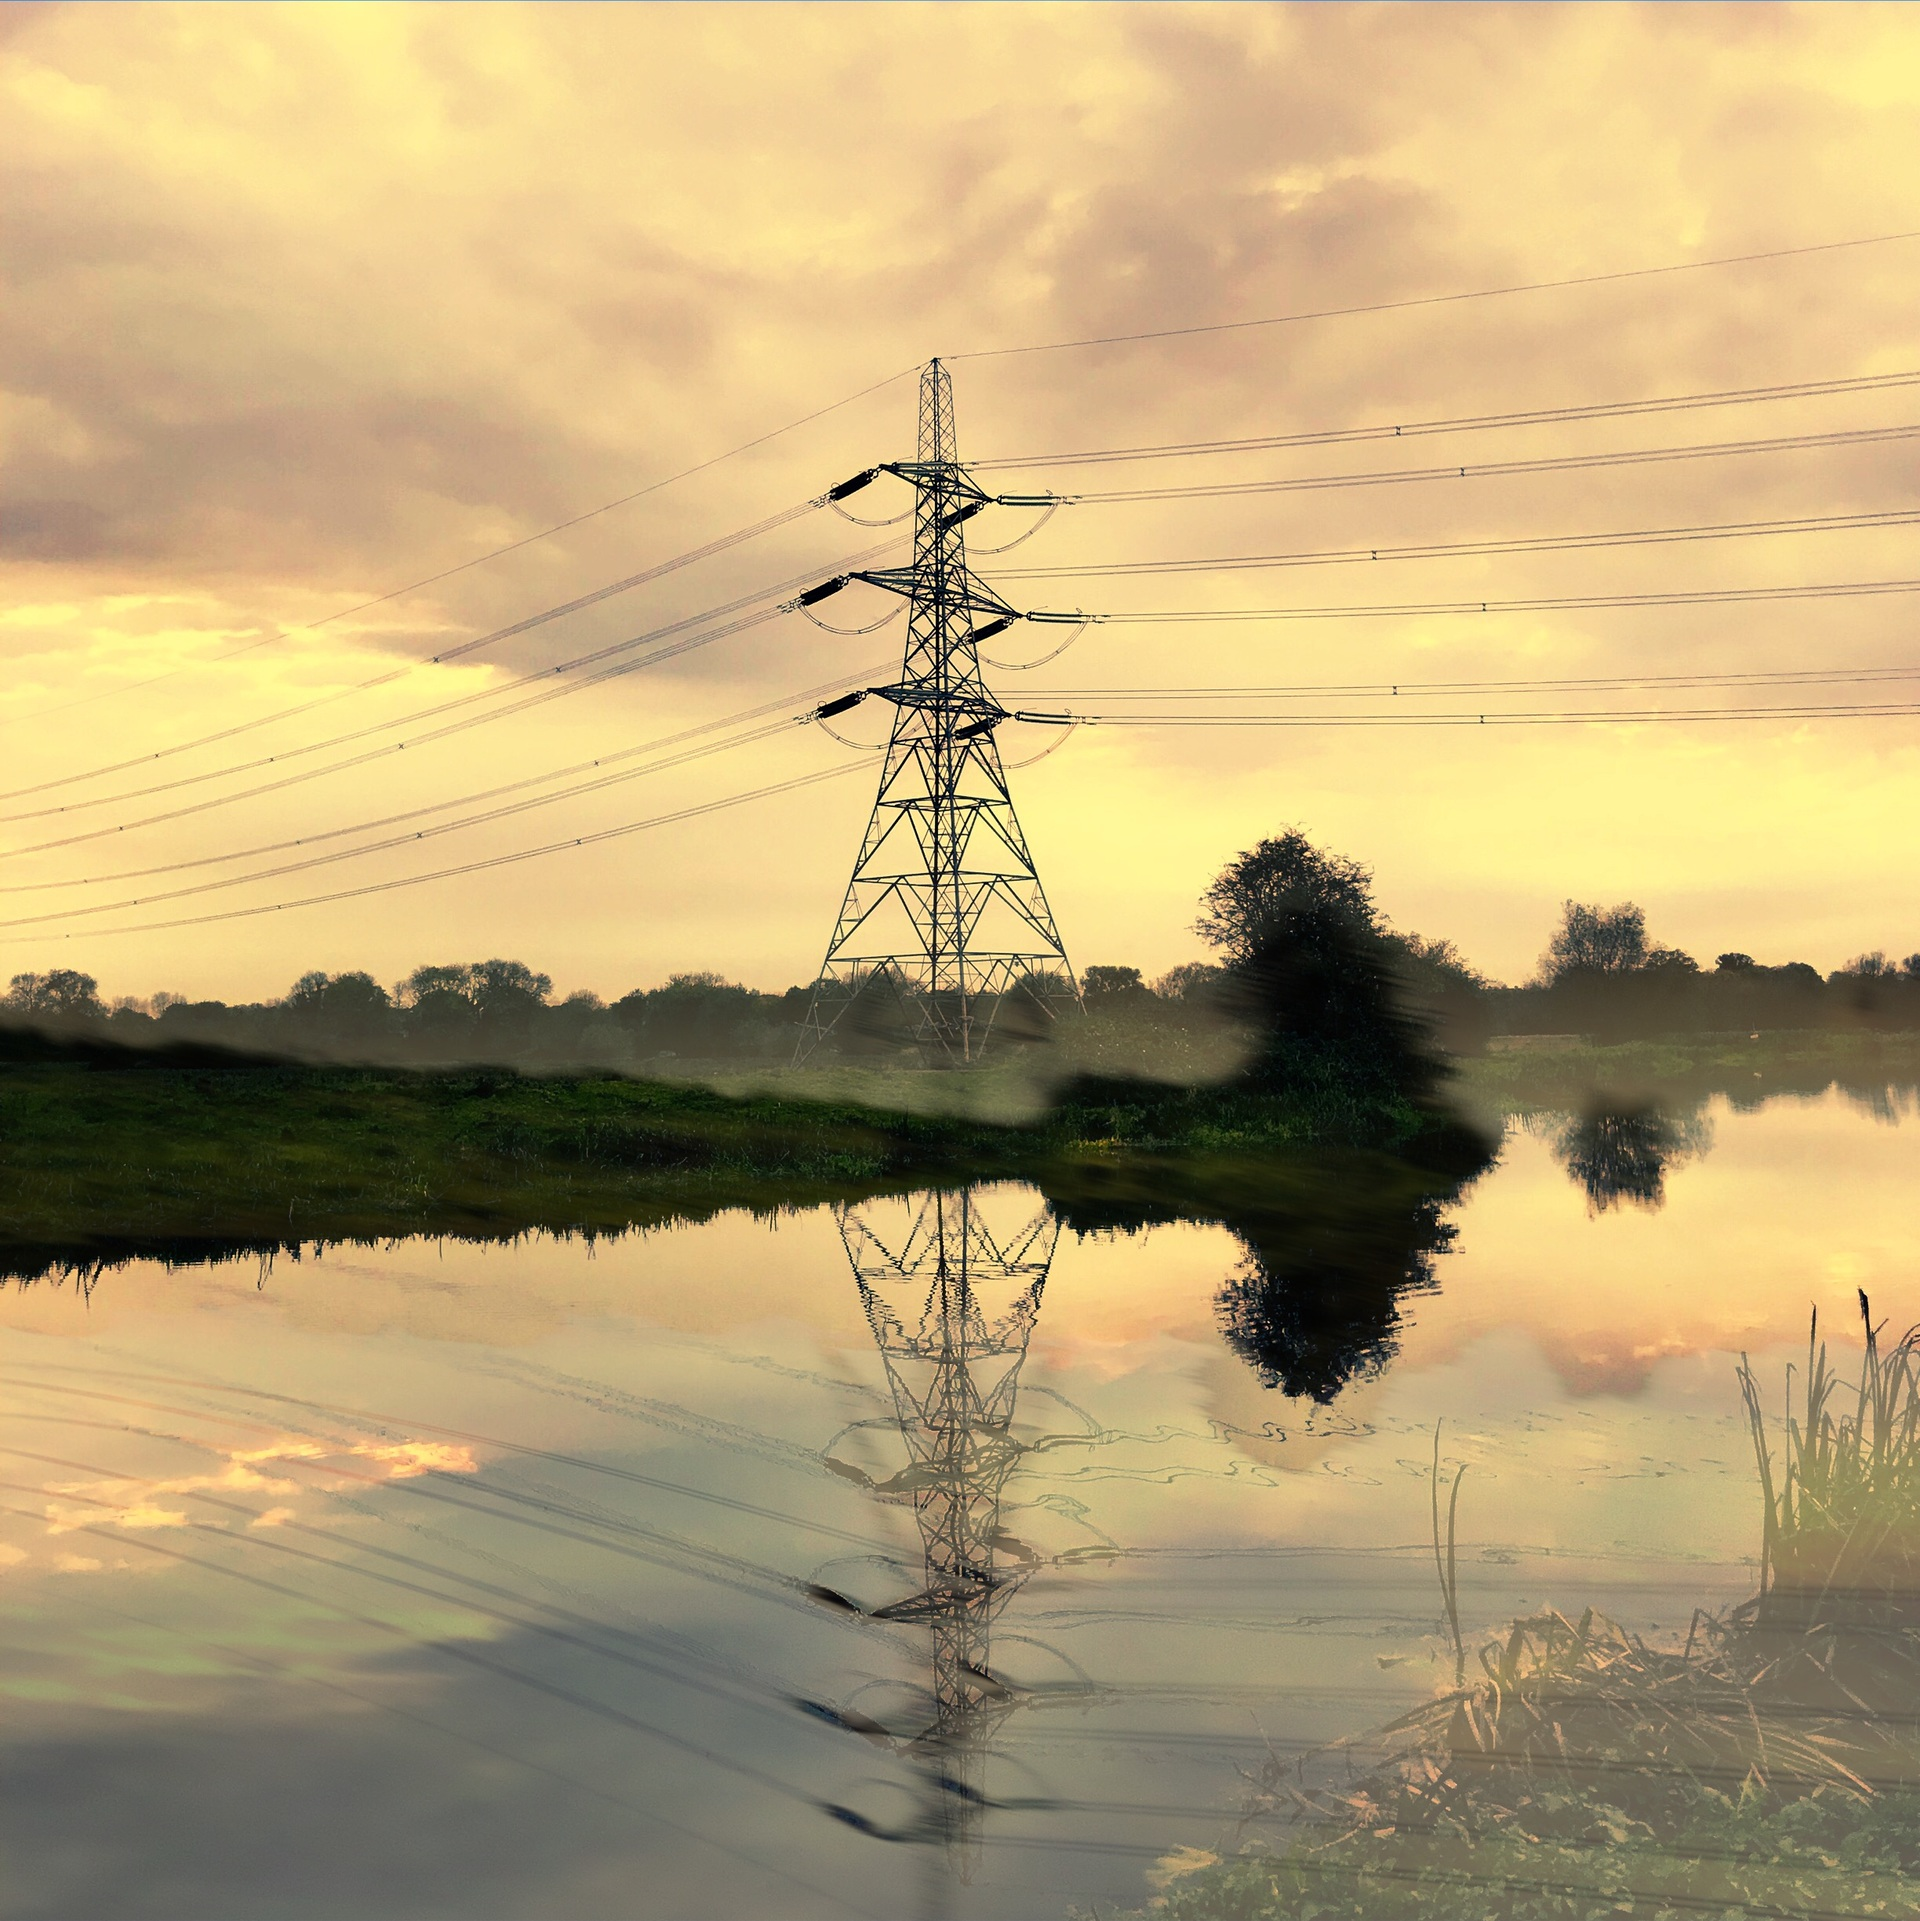 River reflection pylon | mezmic, sky, voltage, electricity